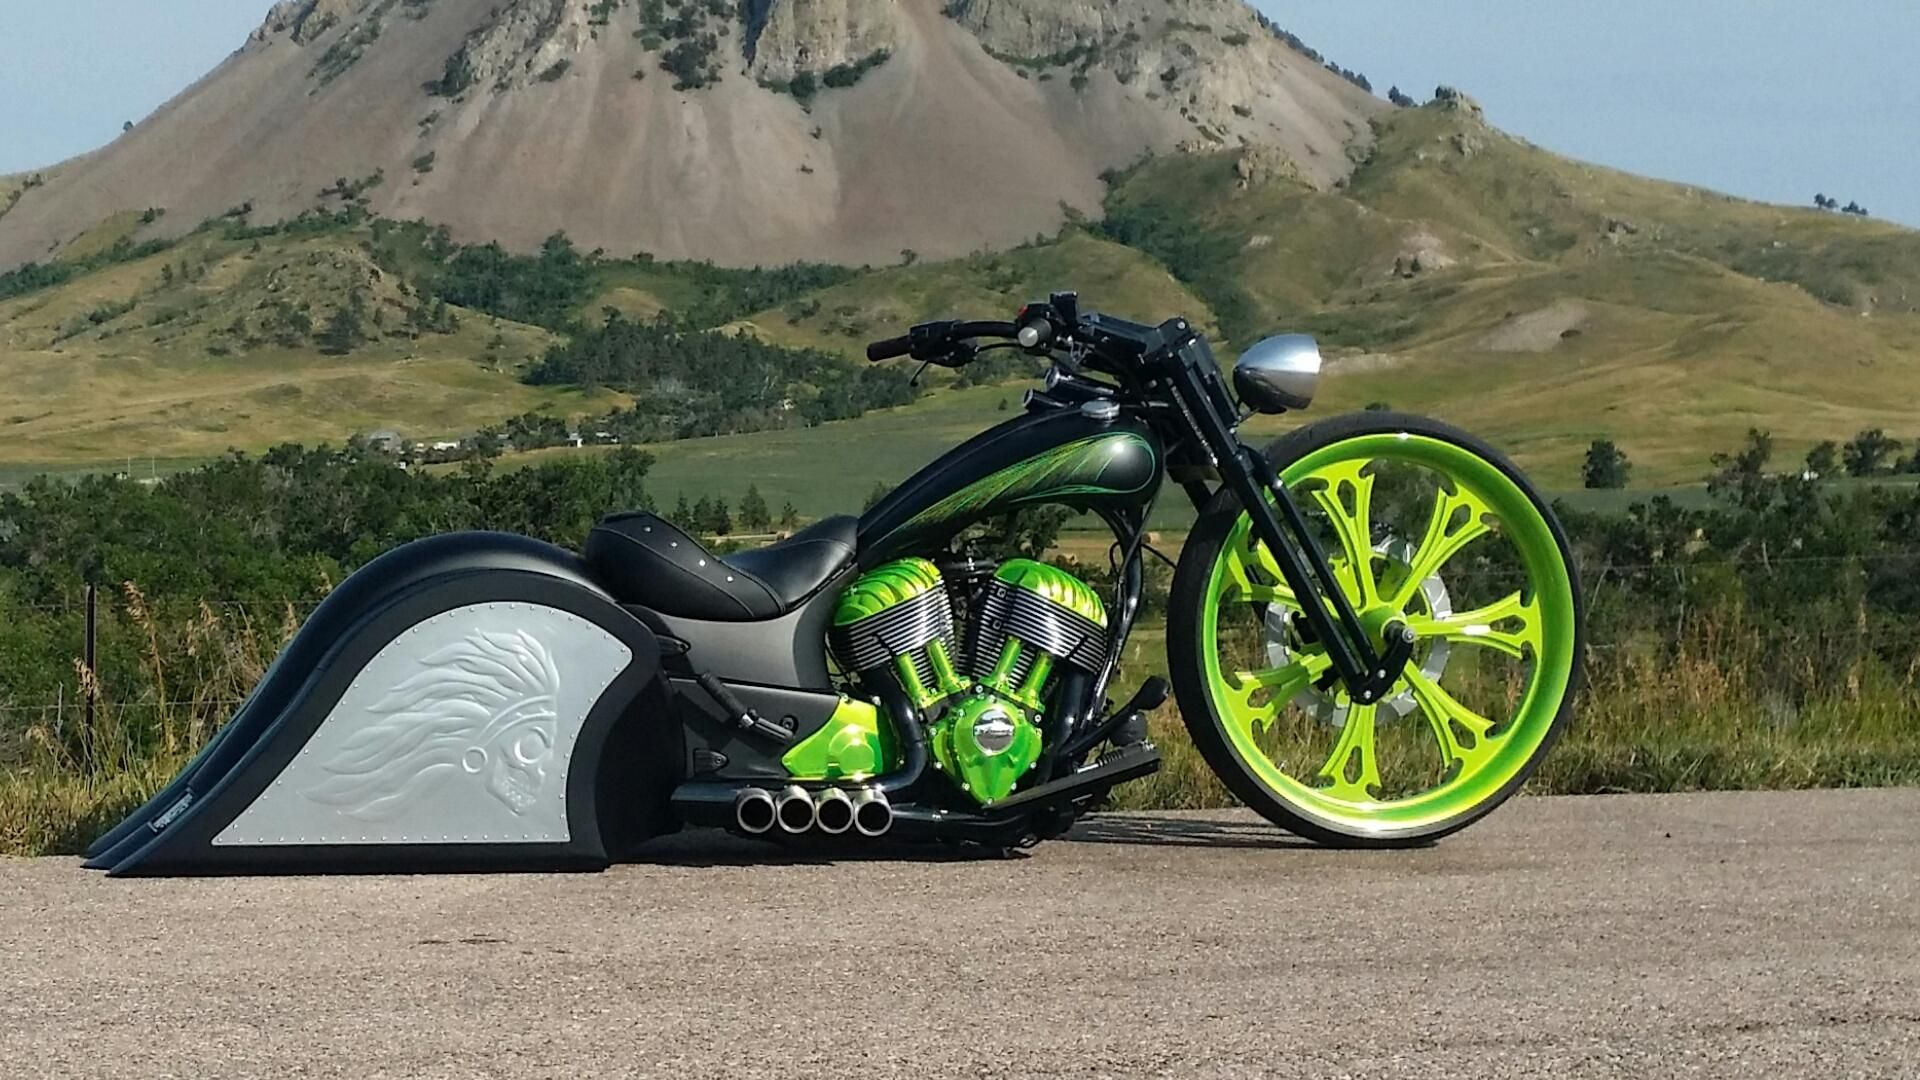 Victory Motorcycle Parts >> Vicbaggers Custom Victory Motorcycle Parts And Accessories Big